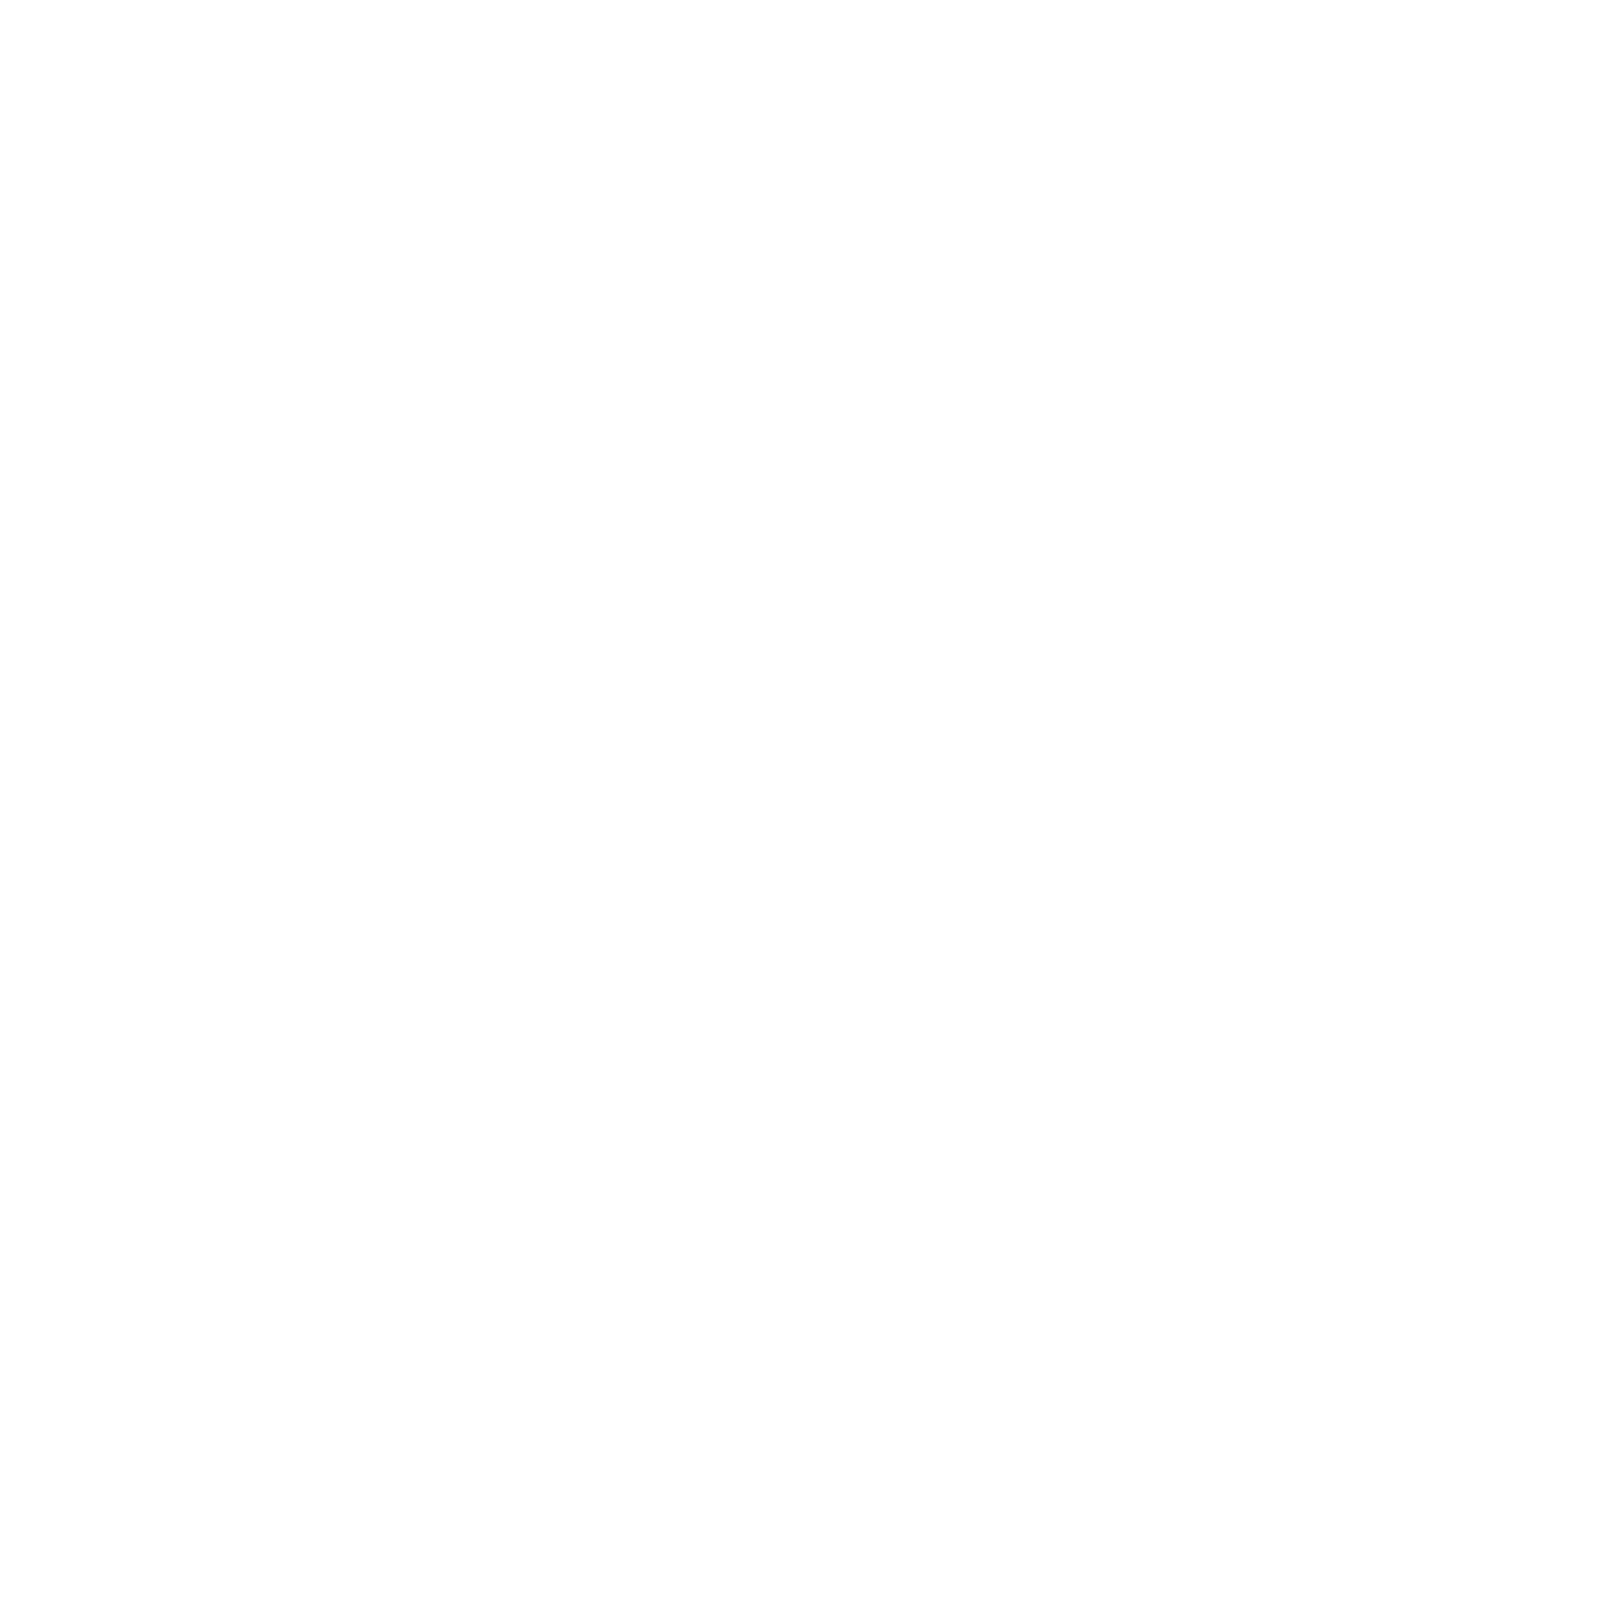 x_icon_png_1543129.png